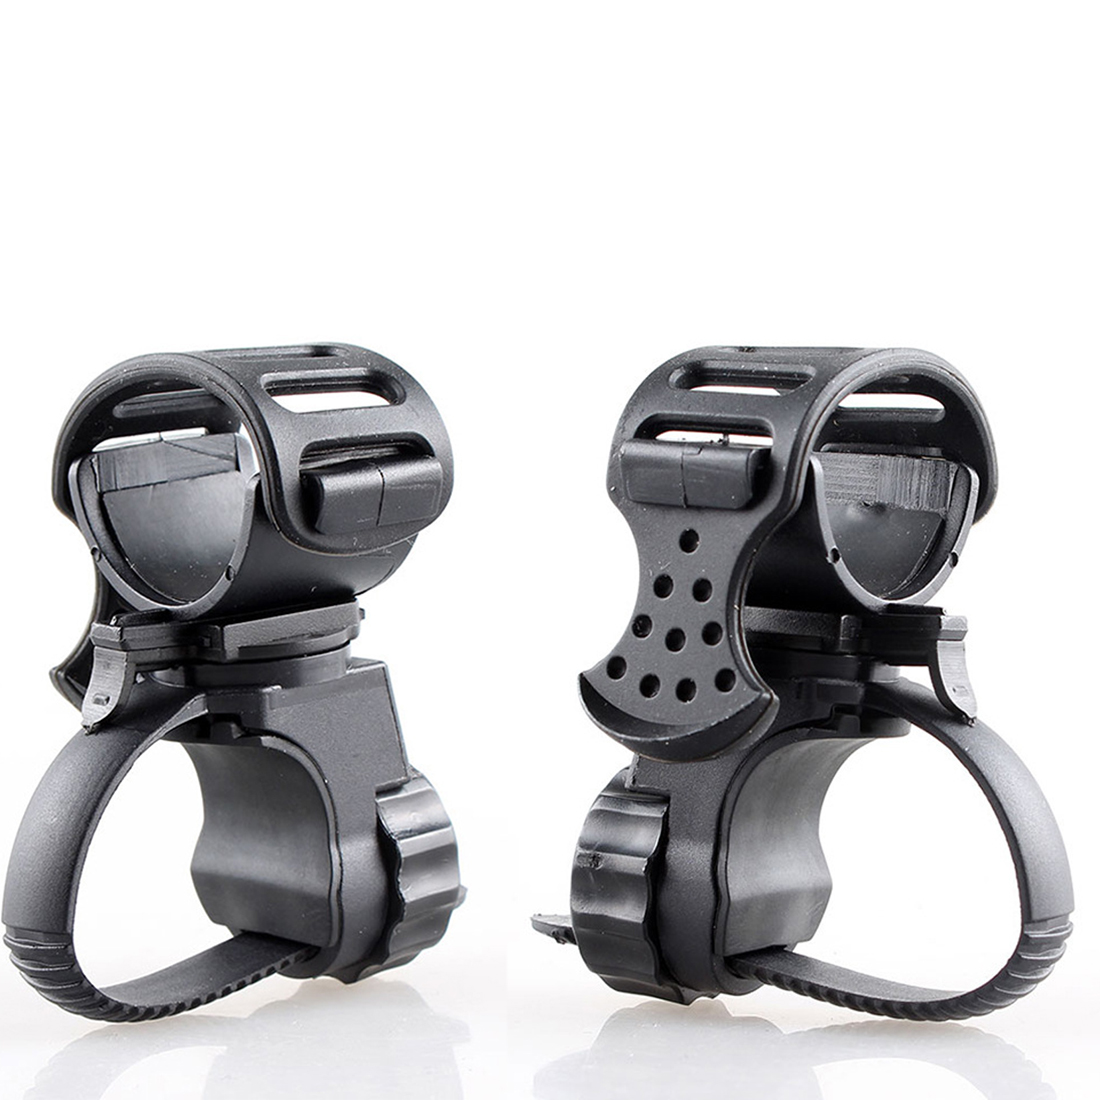 360° Rotation Bicycle Bike Mount Holder Clip Clamp for LED Flashlight Torch Lamp